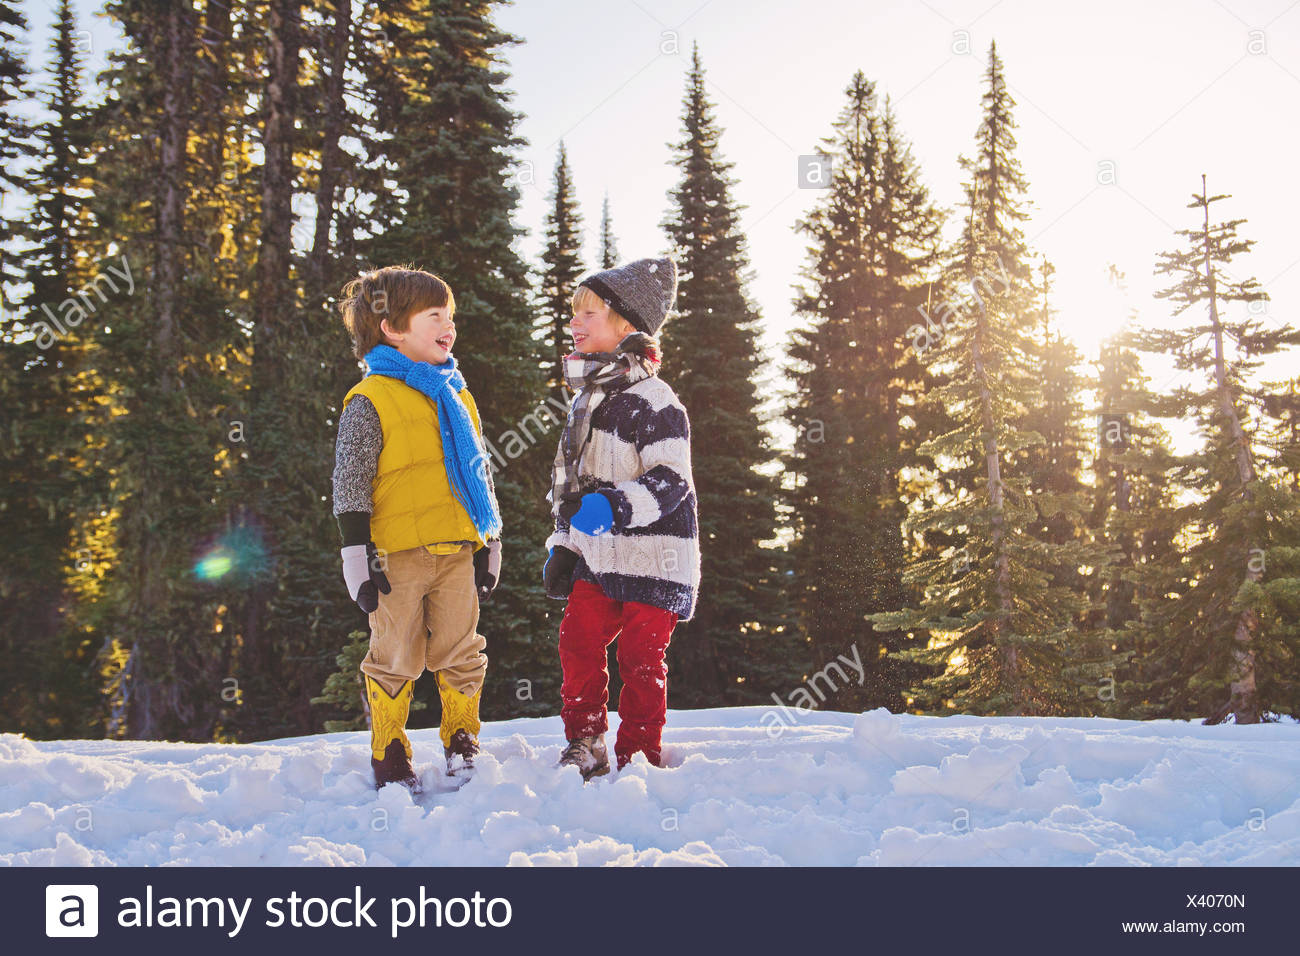 Two young boys laughing in the snow, trees in the background - Stock Image